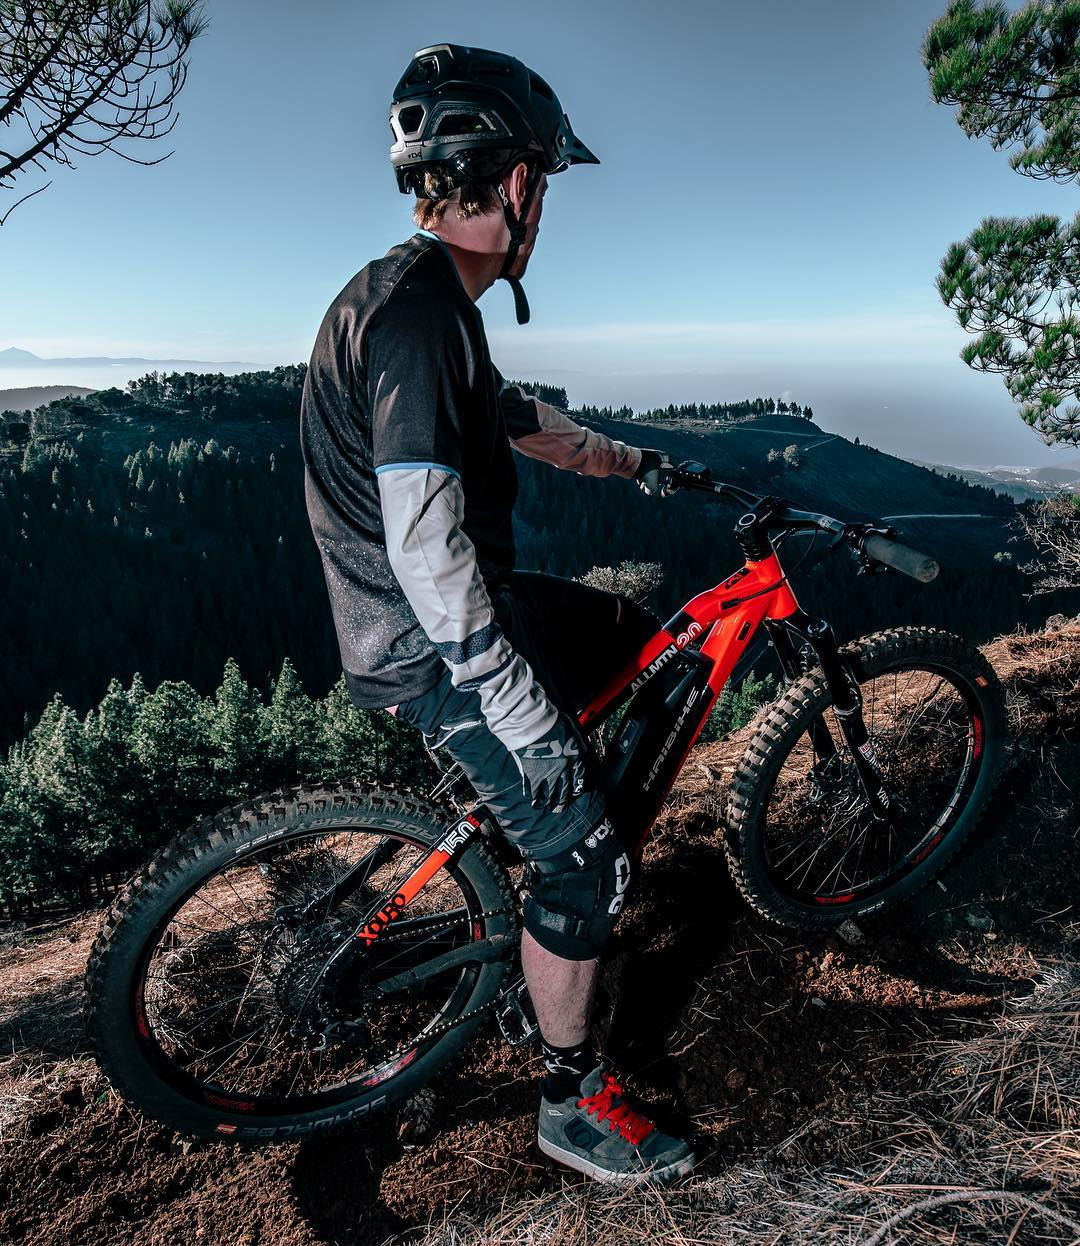 """My AllMtn 2.0 has opened up a whole new world of riding spots I would have never explored without it"" – @tomcardymtb // 📷 @hdc_m #emtb #ebike #mountainbiking #emountainbike"